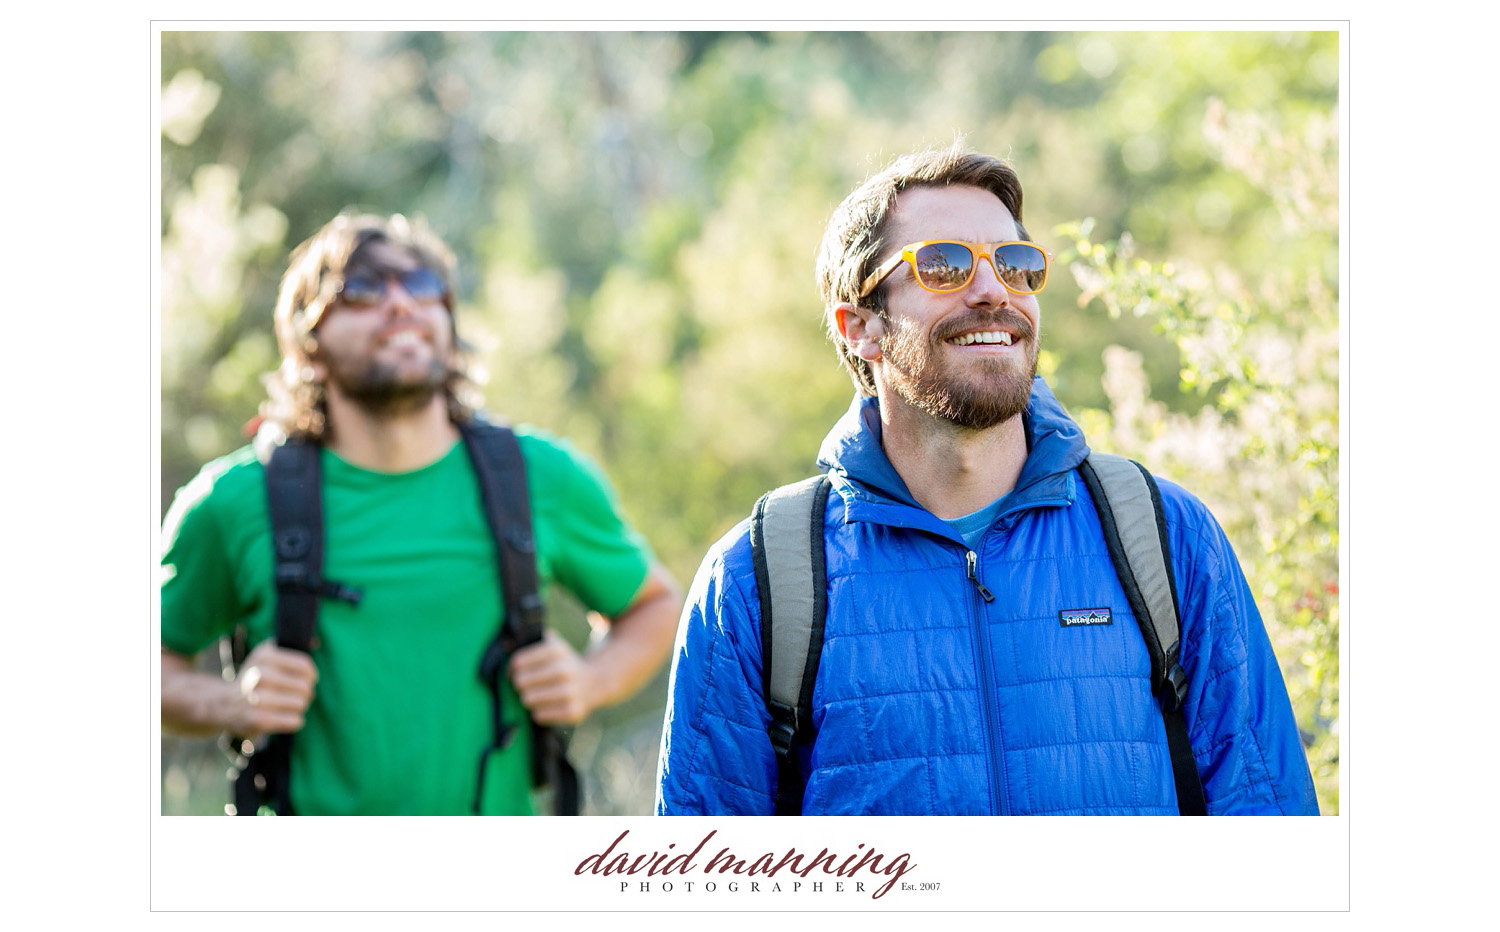 SOLO-Eyewear--Commercial-Editorial-Photos-David-Manning-Photographers-0023.jpg